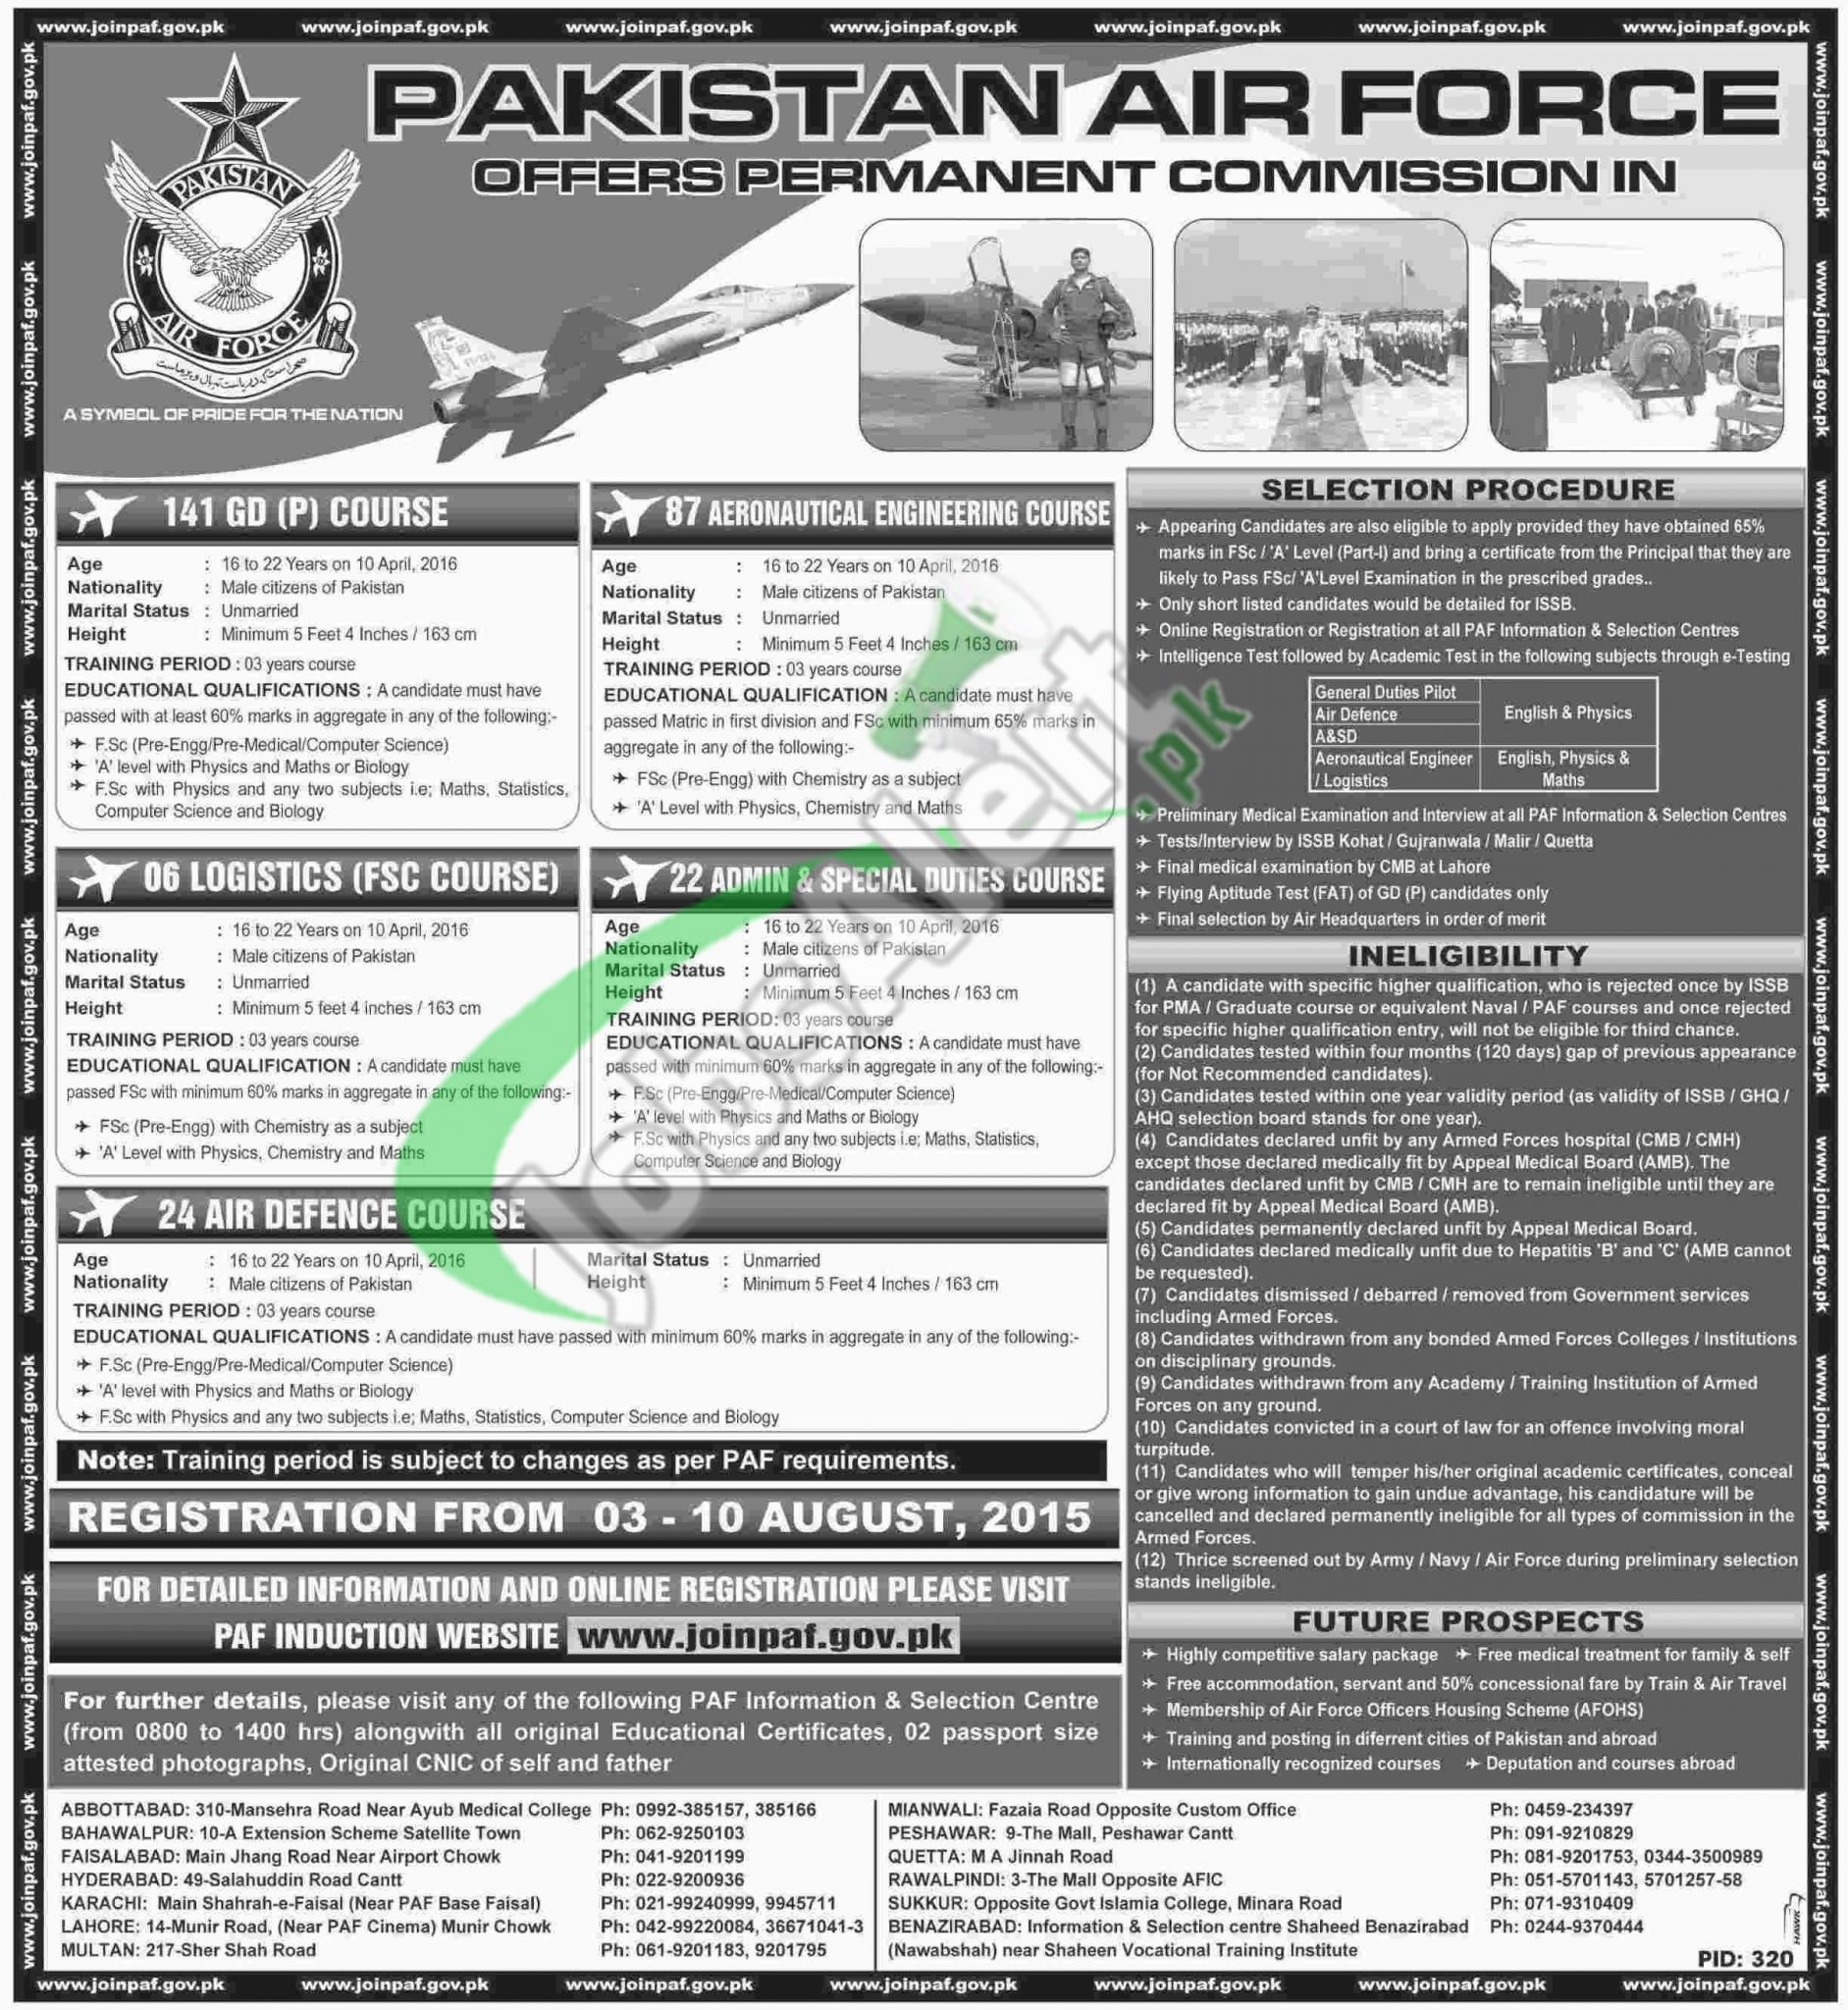 Join PAF 2015 as Permanent Commission in 141 GDP / 87 CAE / 24 AD ...